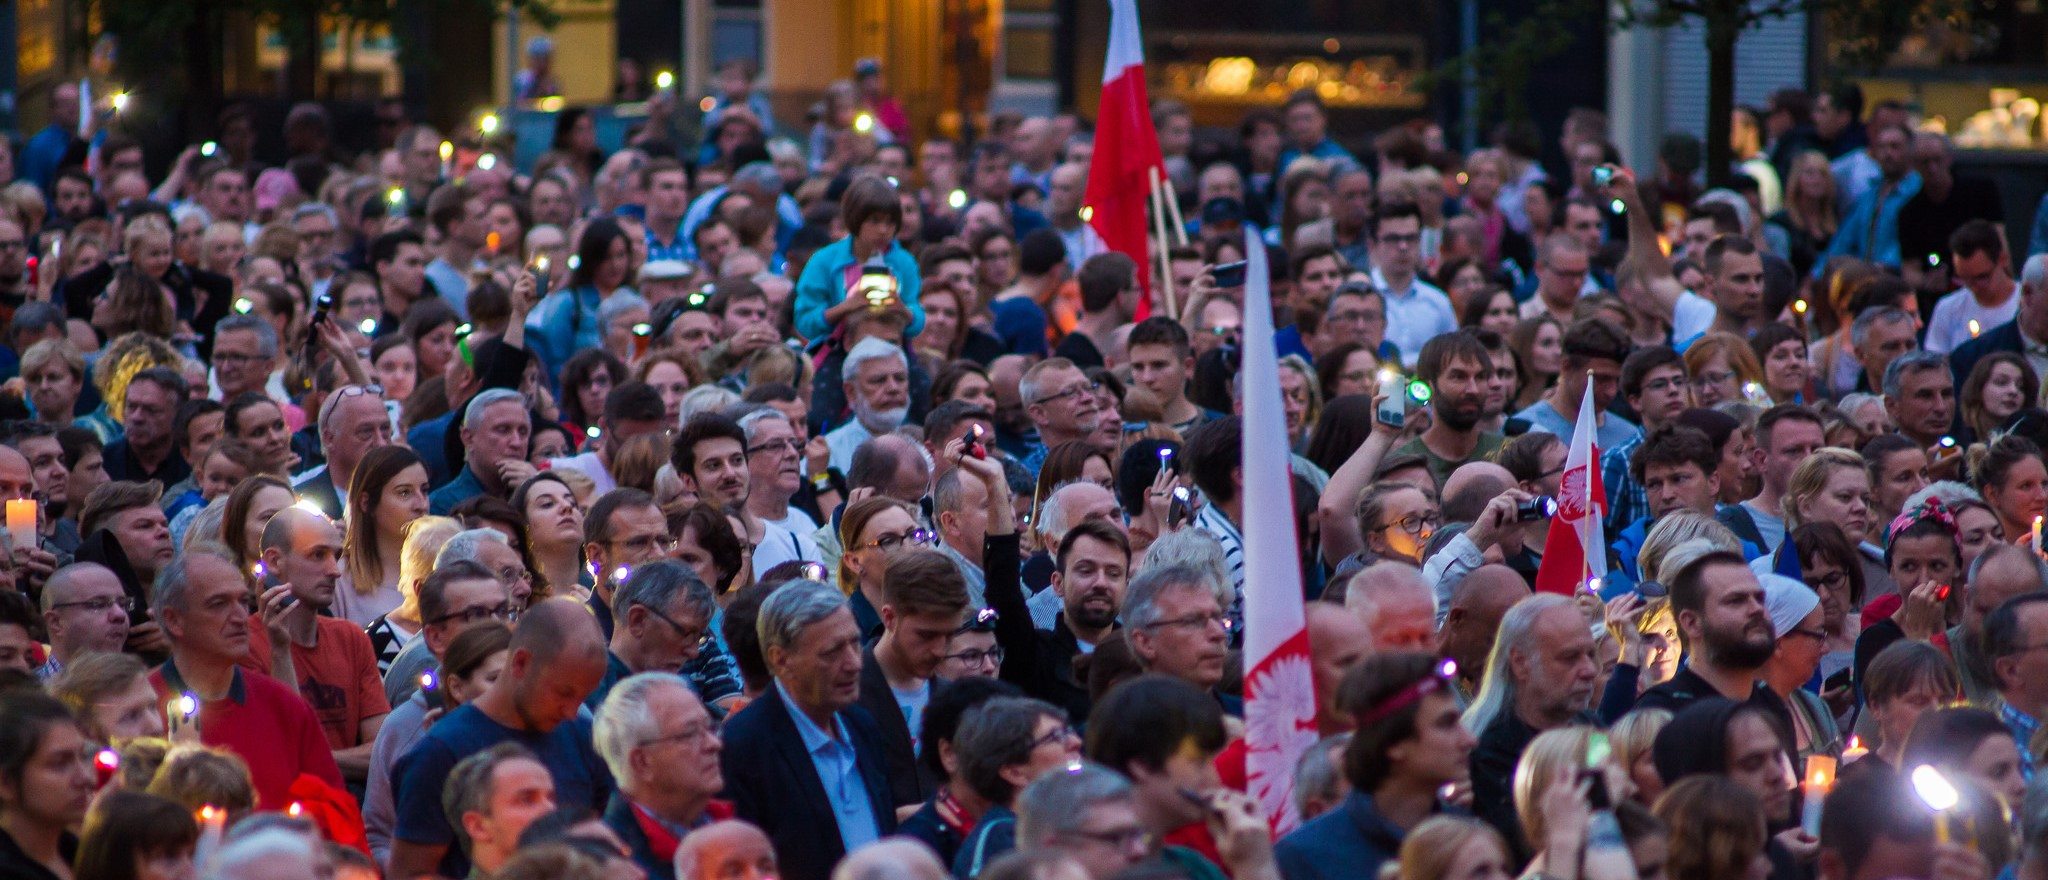 A protest against proposed judicial reforms in Poznan, Poland, July 2017 (Photo: Flickr/Sakuto)